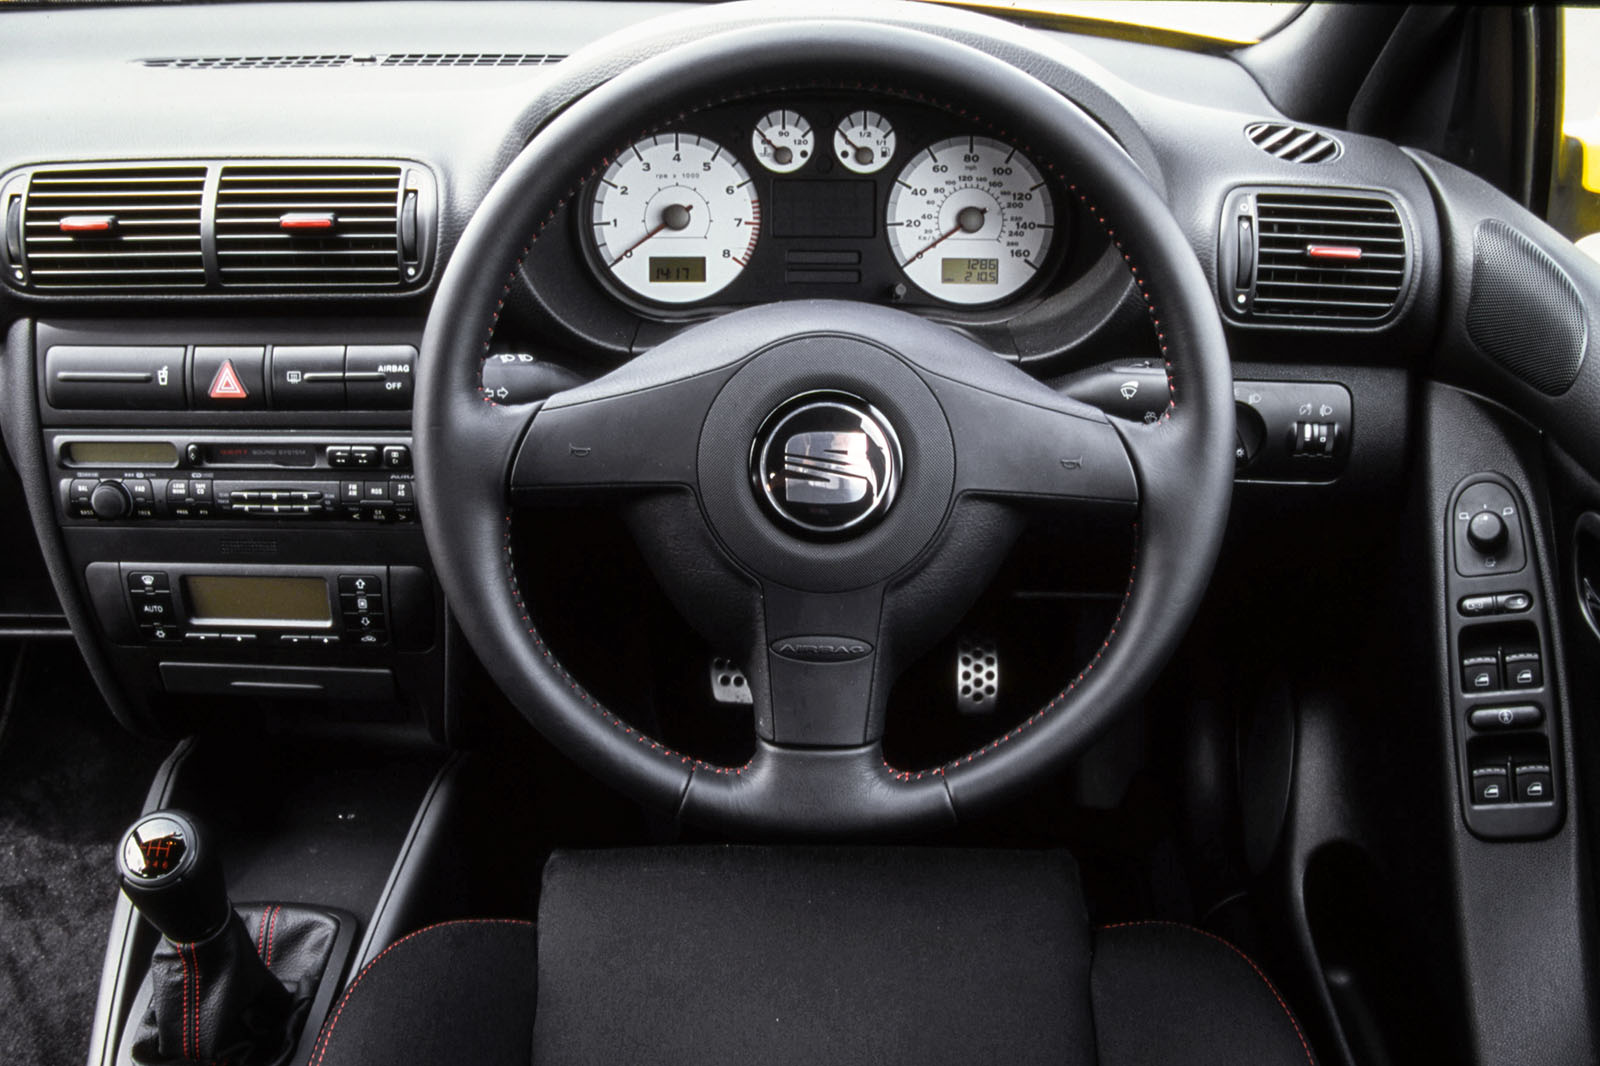 vw 1.8 t tuning guide